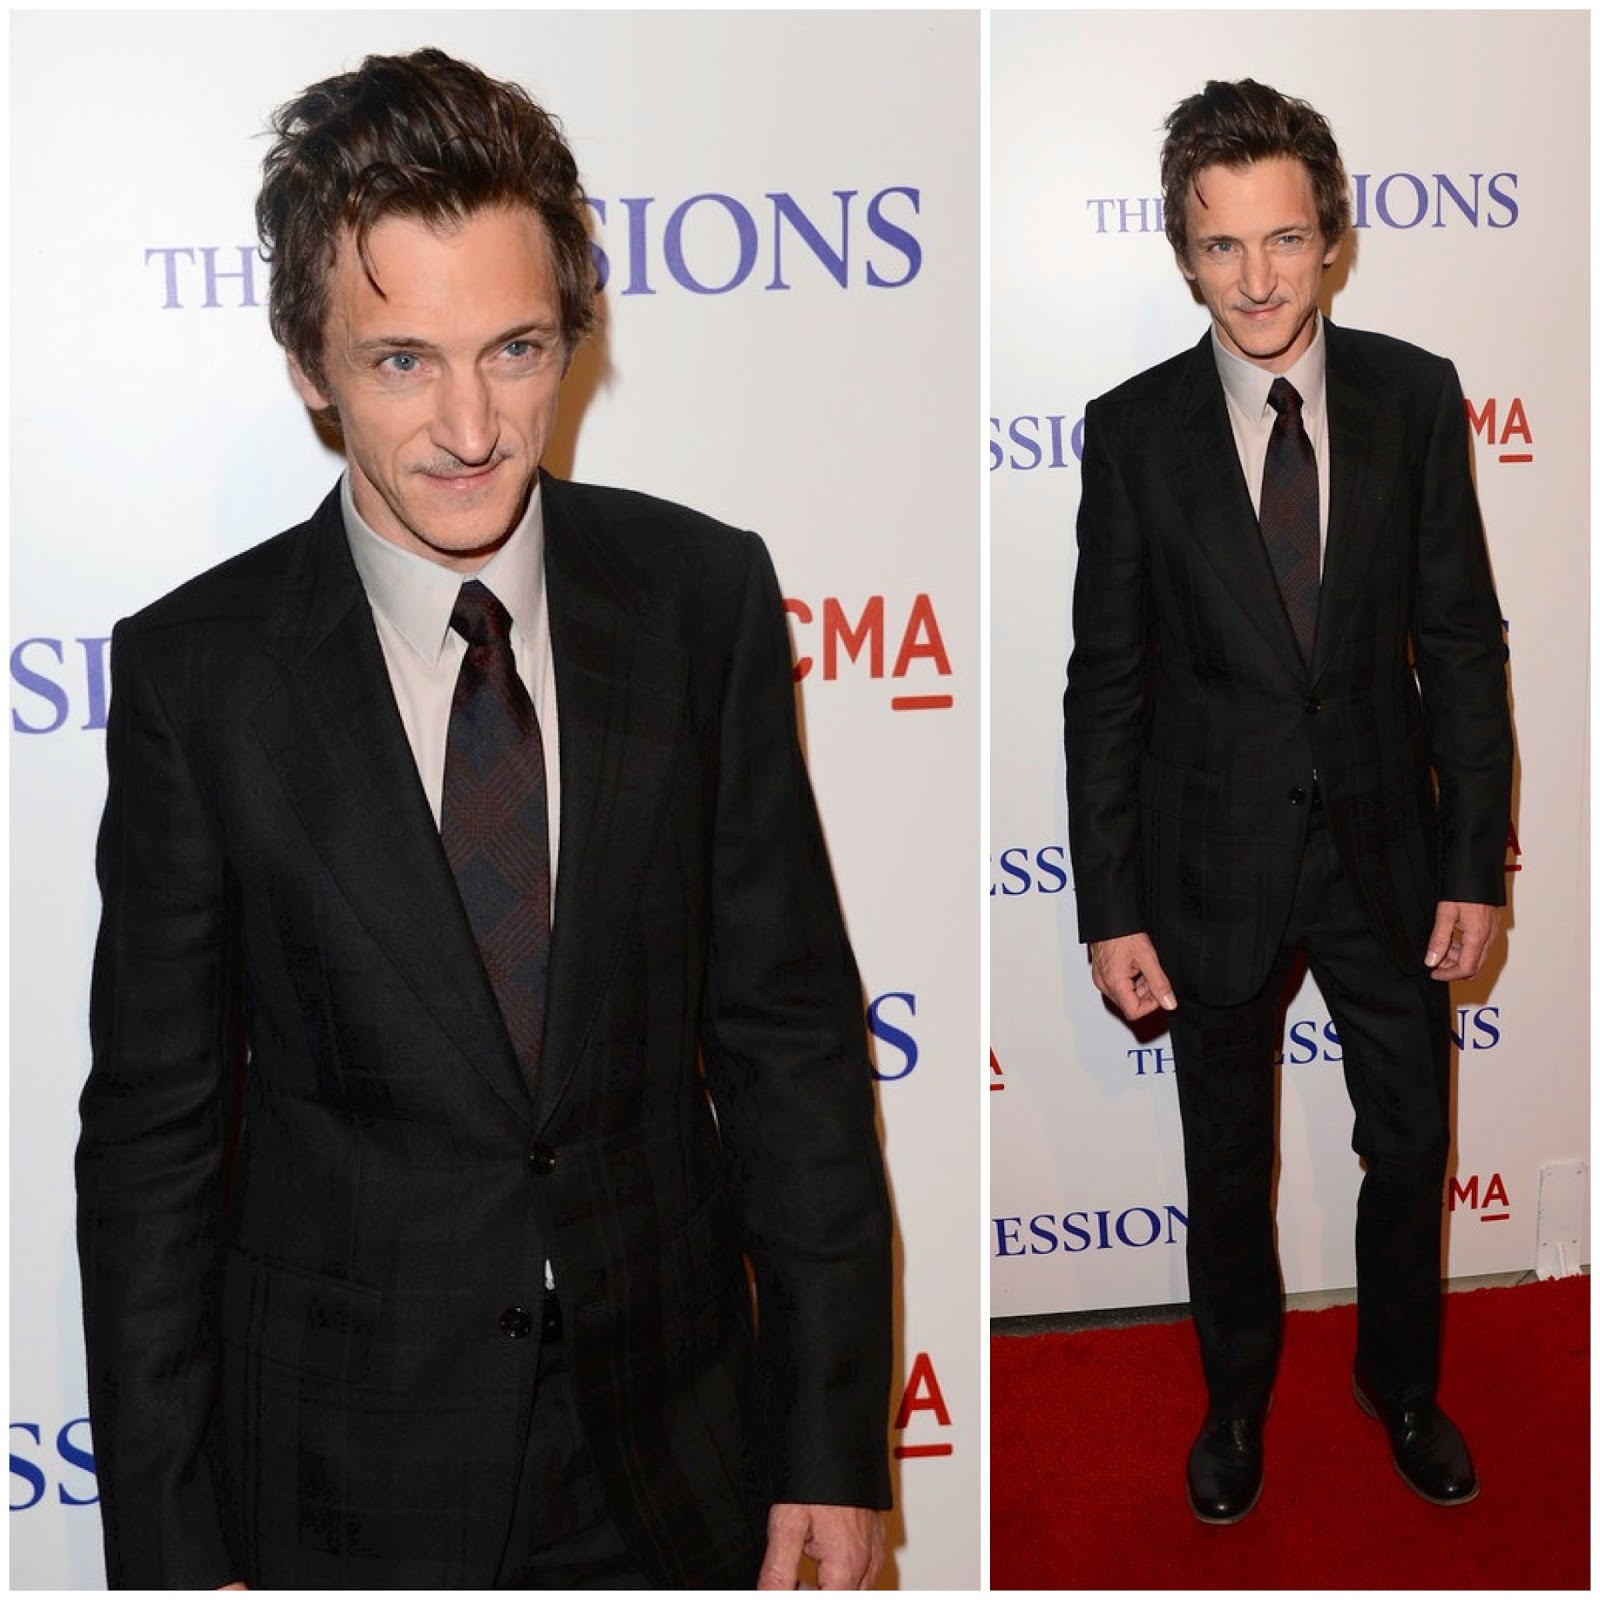 00O00 London Menswear Blog John Hawkes Alexander McQueen suit The Sessions premiere